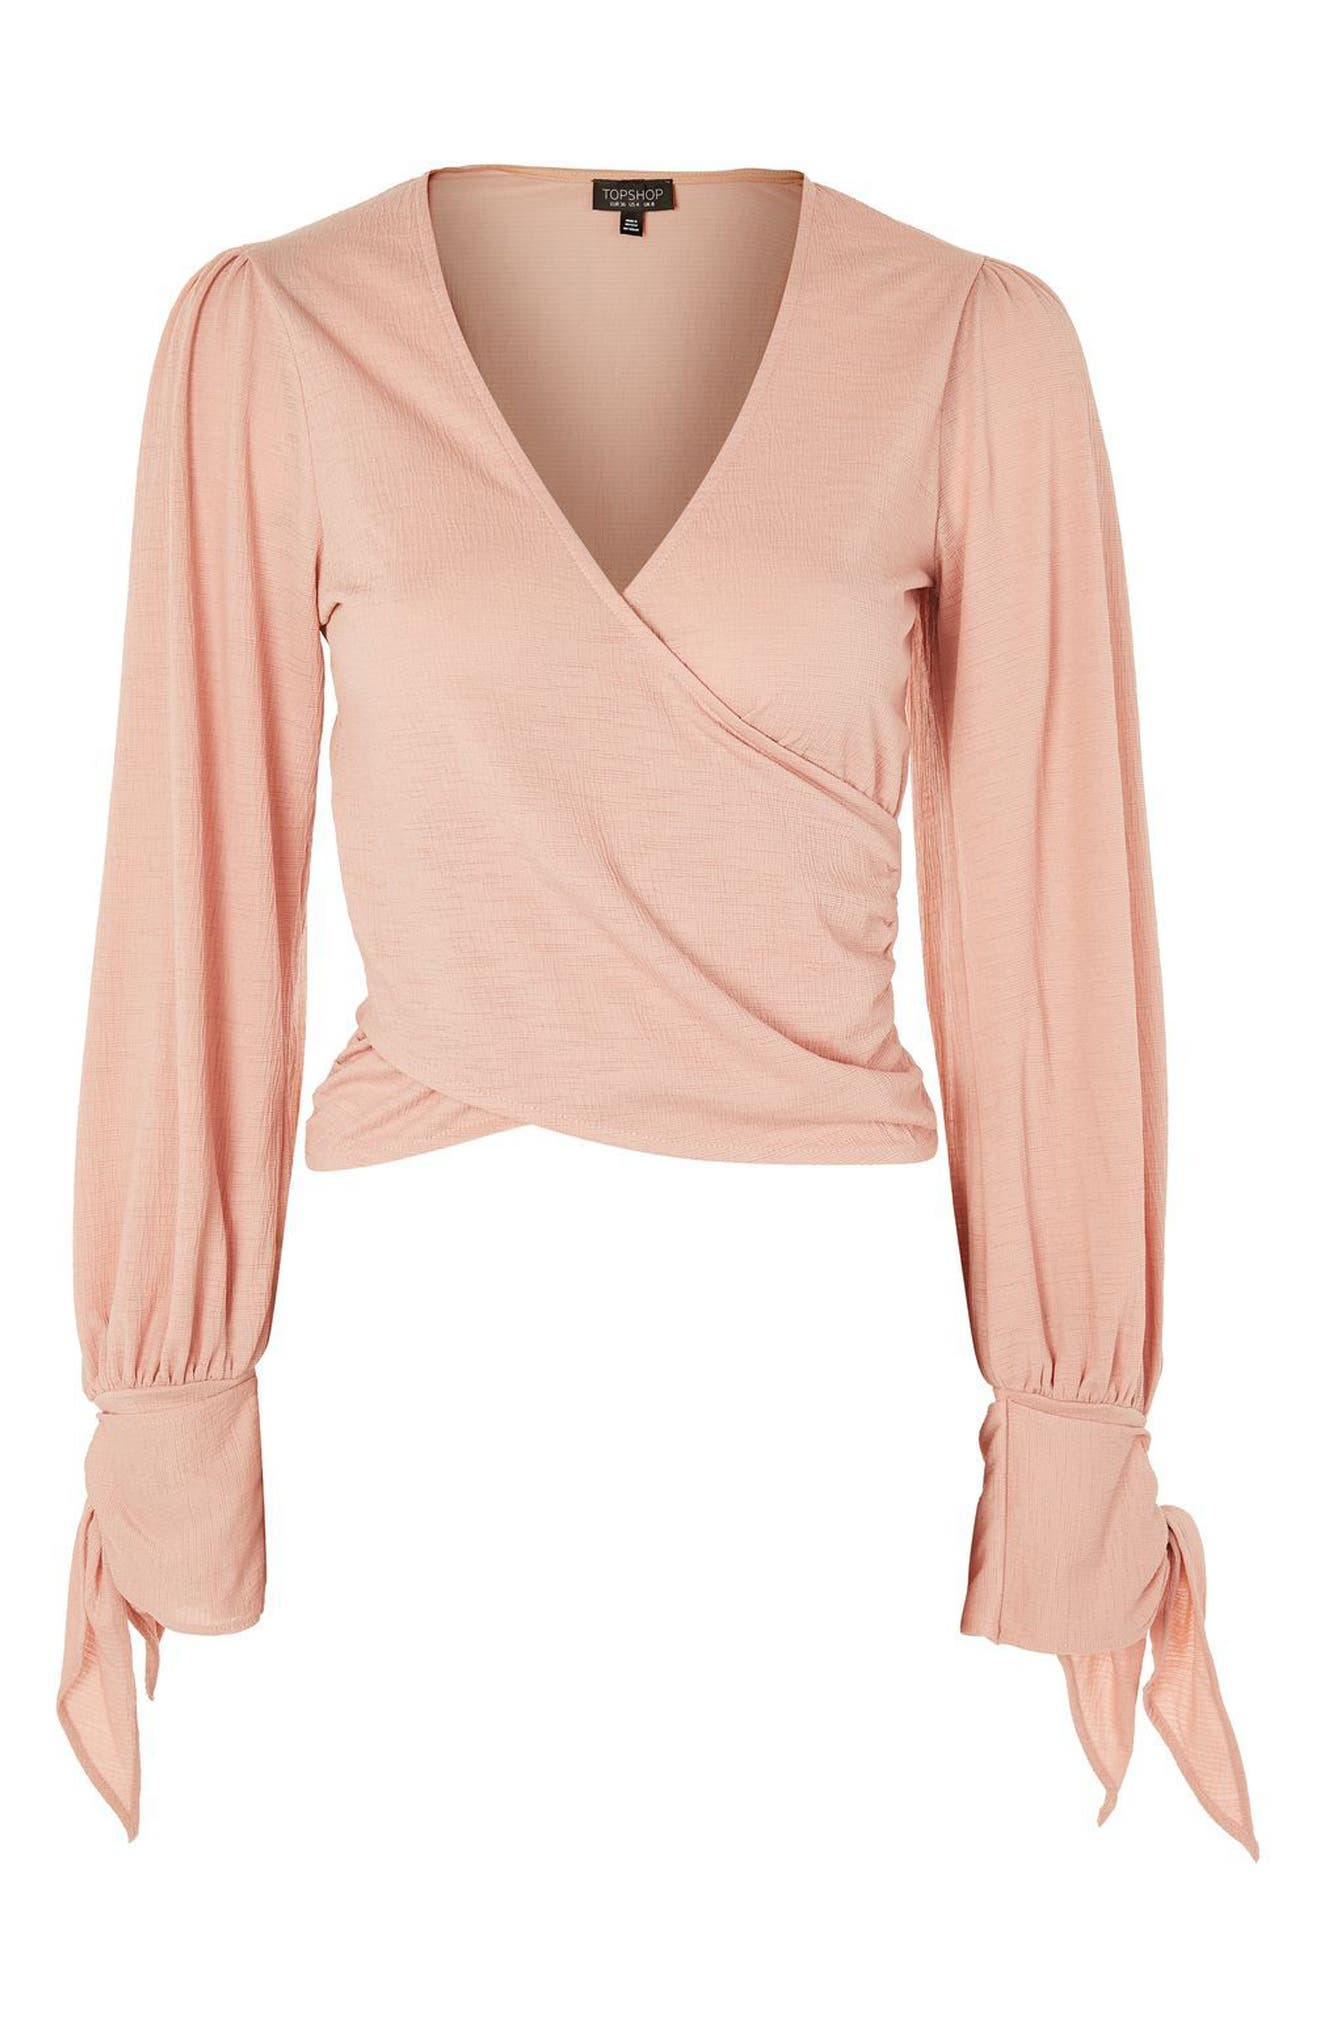 Wrap Front Tie Sleeve Top,                             Alternate thumbnail 3, color,                             650